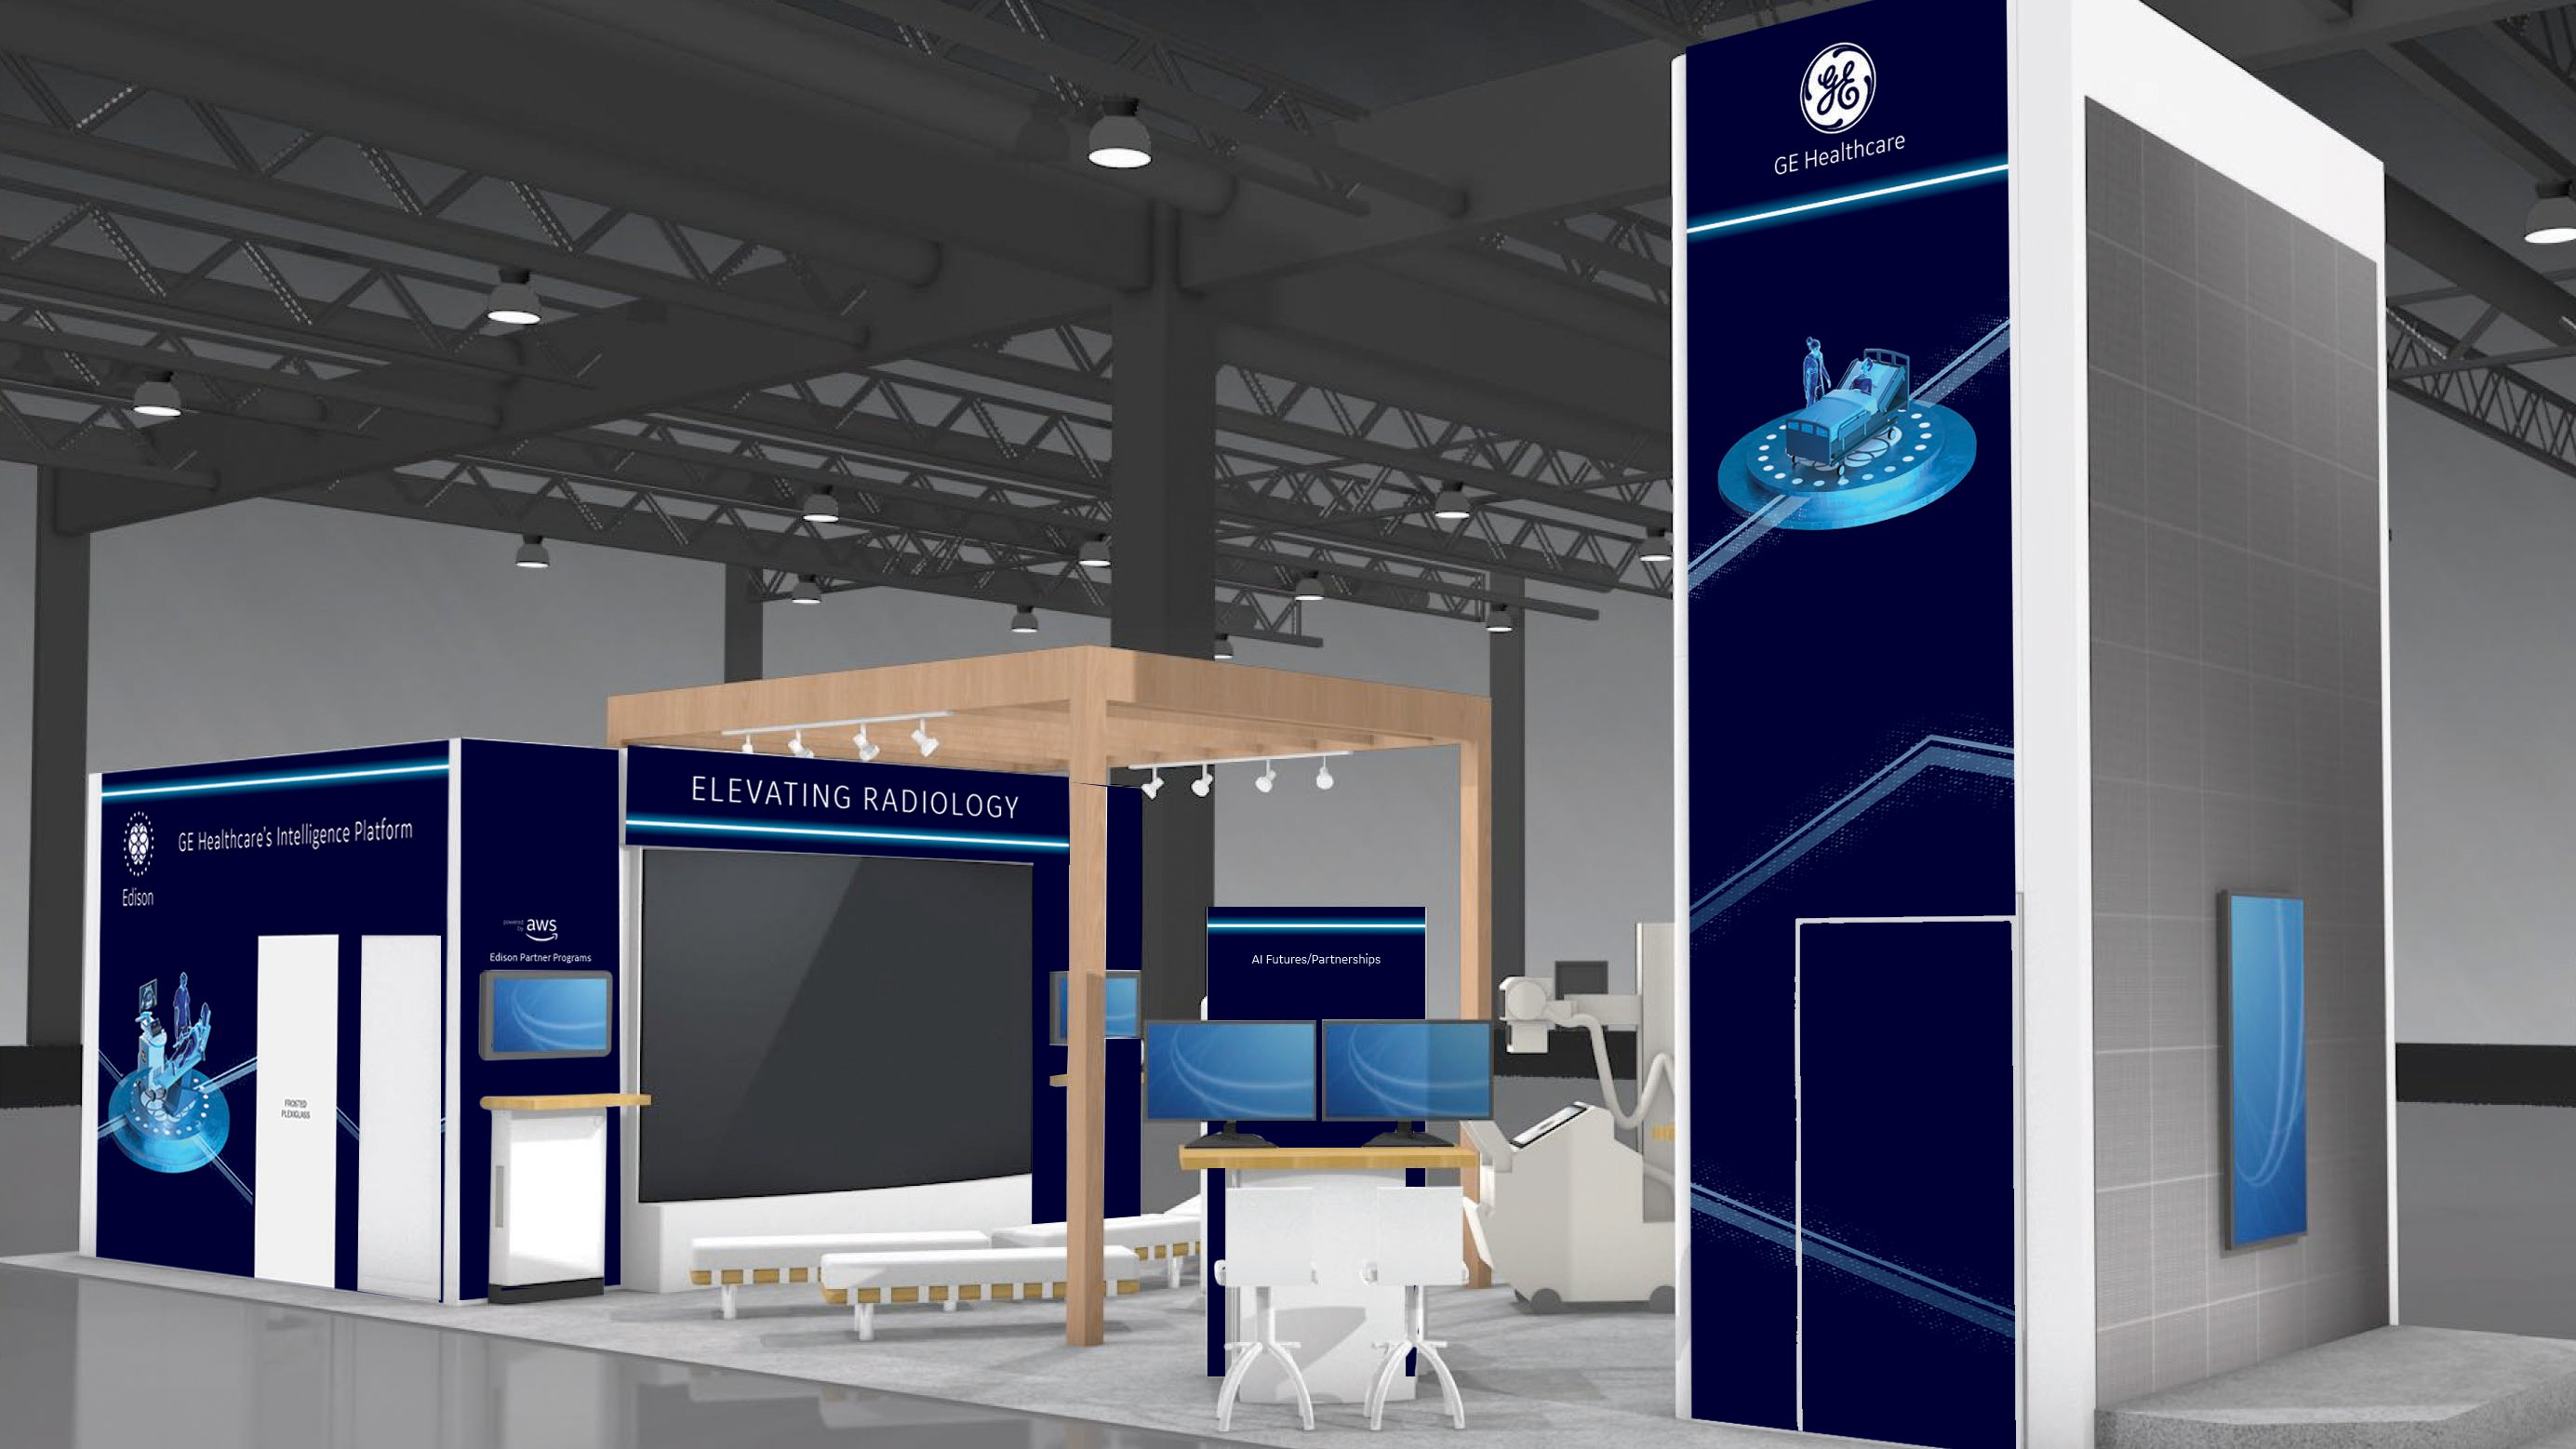 GEHC018-RSNA-Booth-12CRC-View-Front